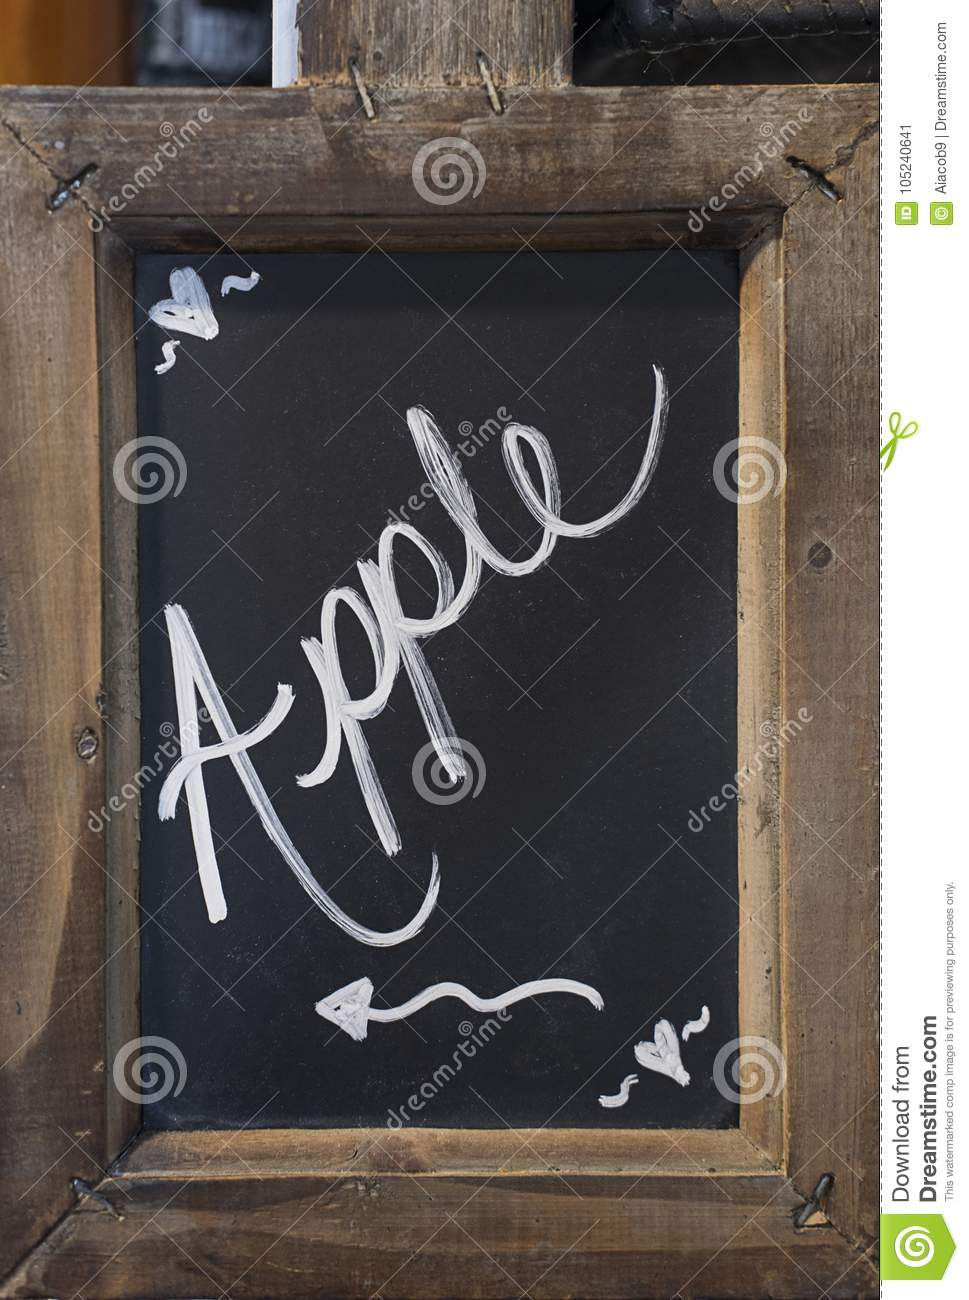 Close-up of blackboard with word `Apple` written on it with an arrow showing to the left, fixed in a wooden rustic frame